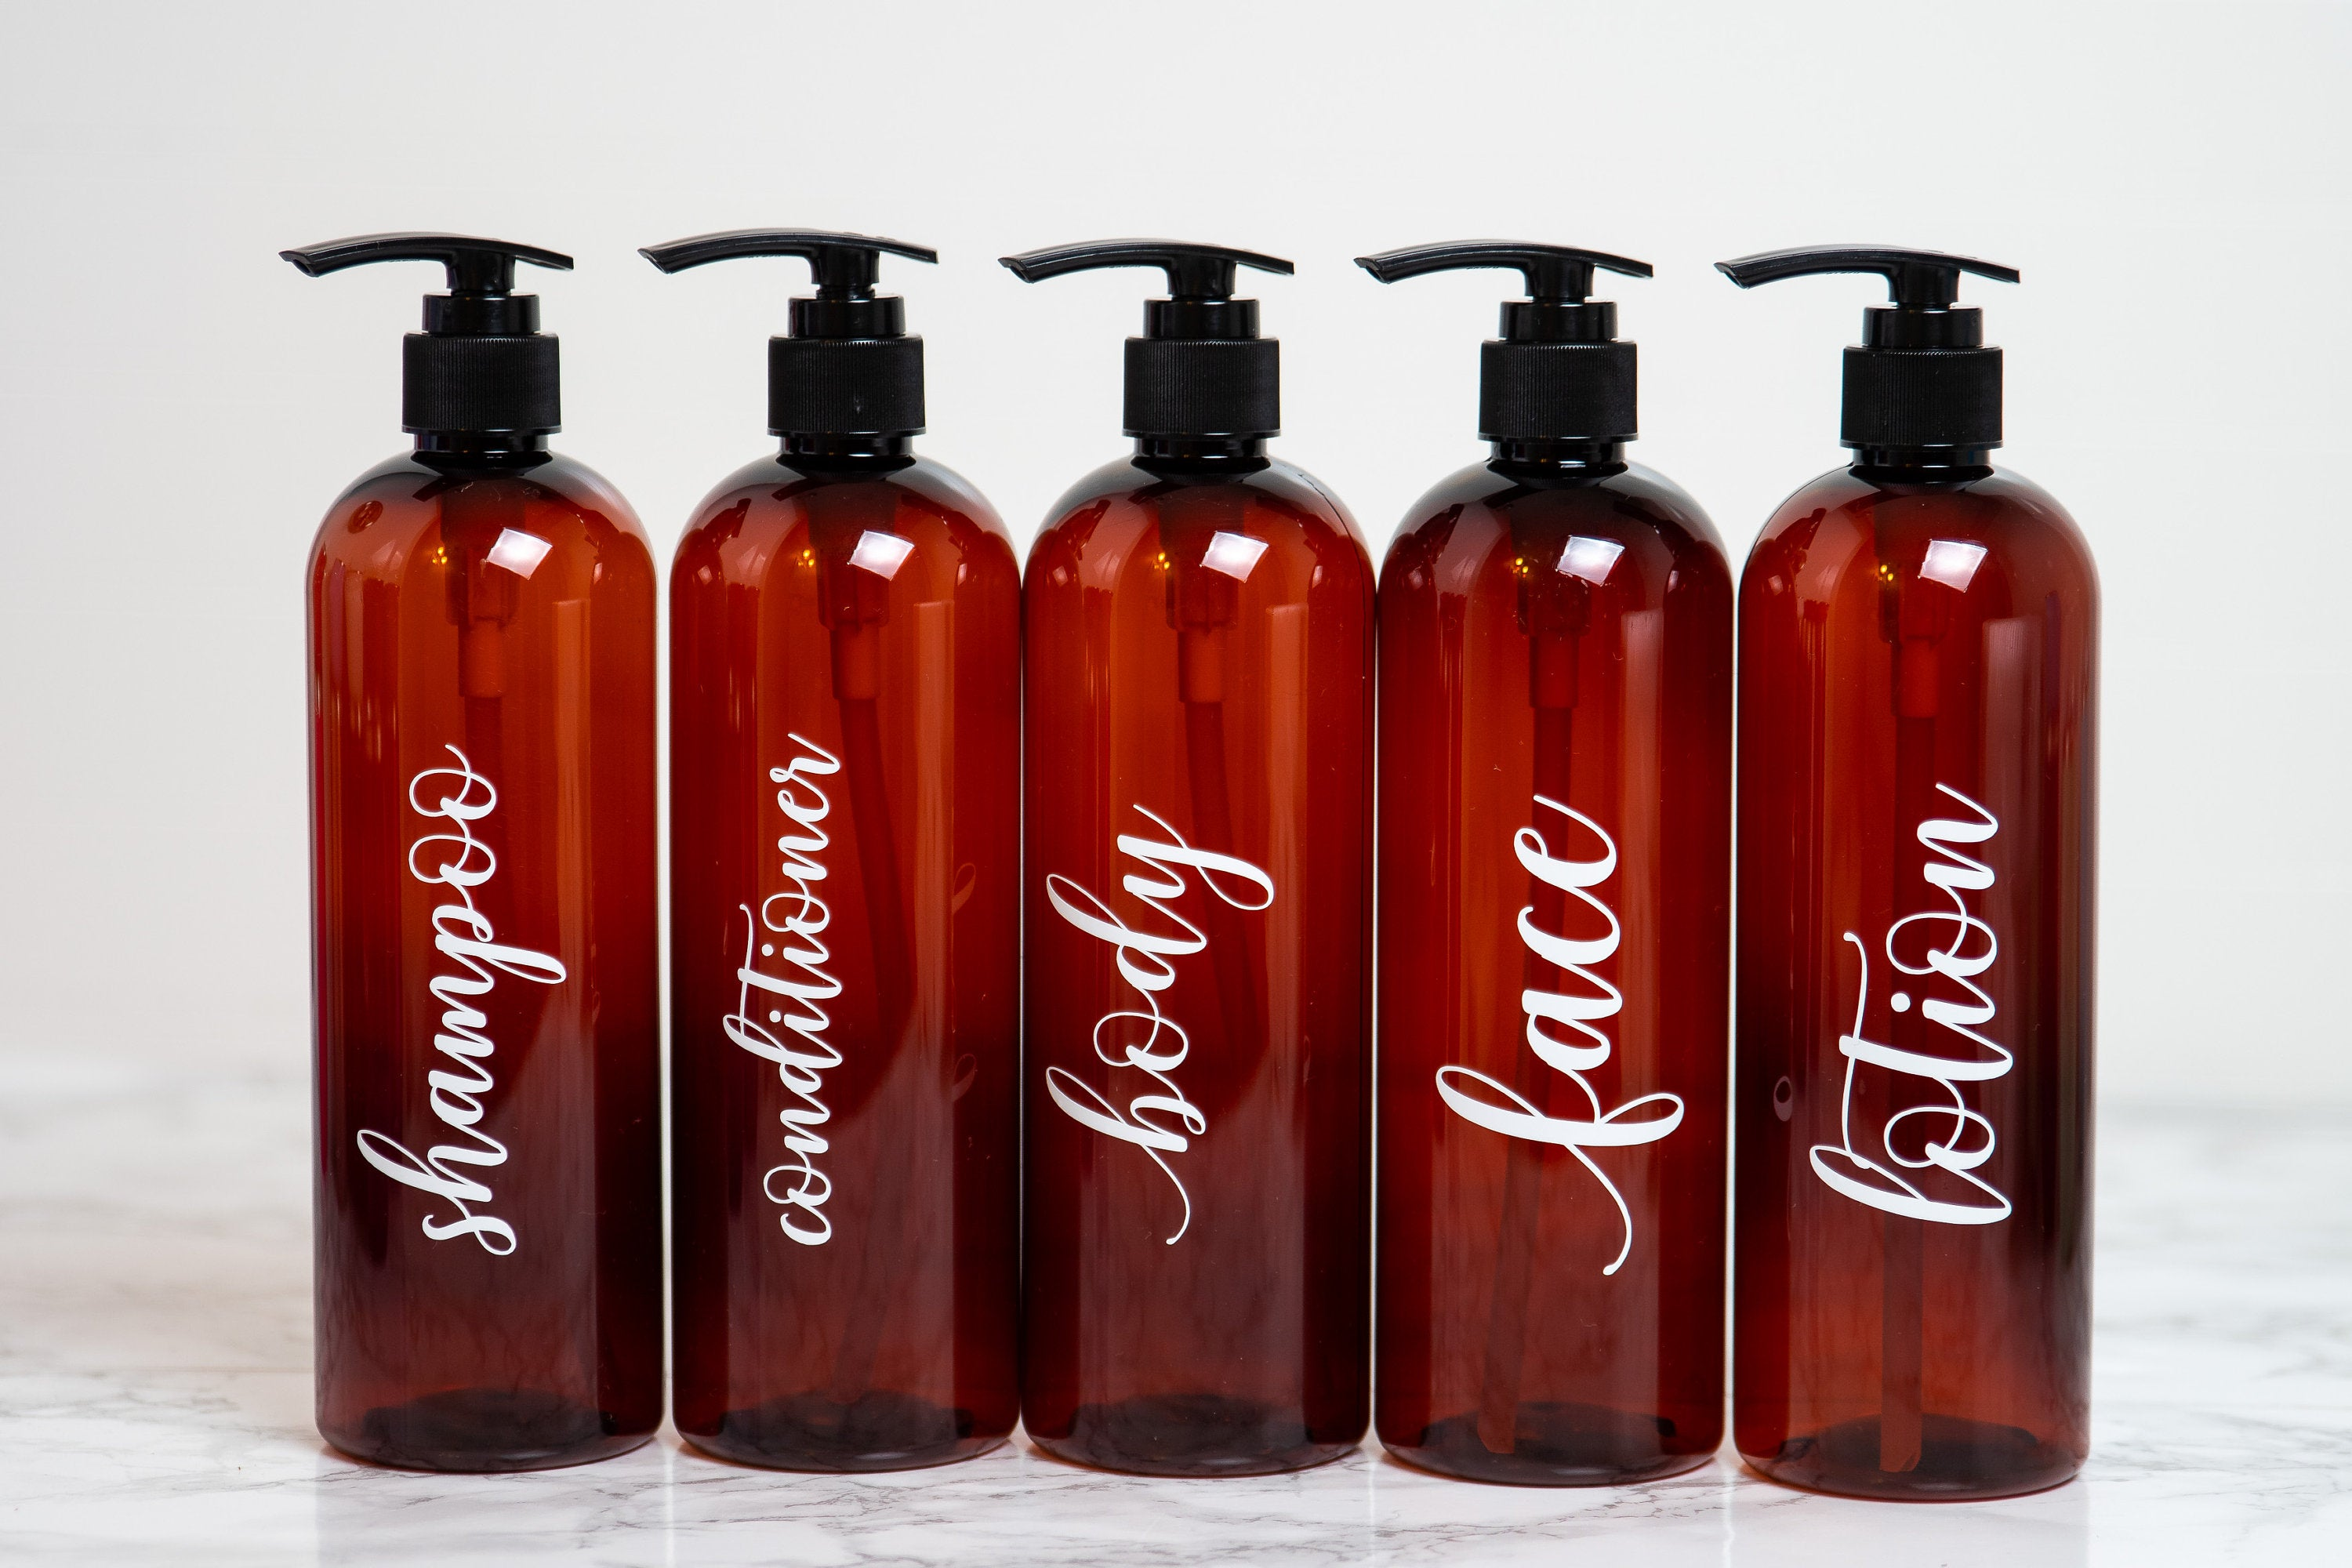 Amber Plastic Bottle for Shampoo, Shower Bottles, Shampoo and Conditioner Dispenser, Bathroom Shower Accessories